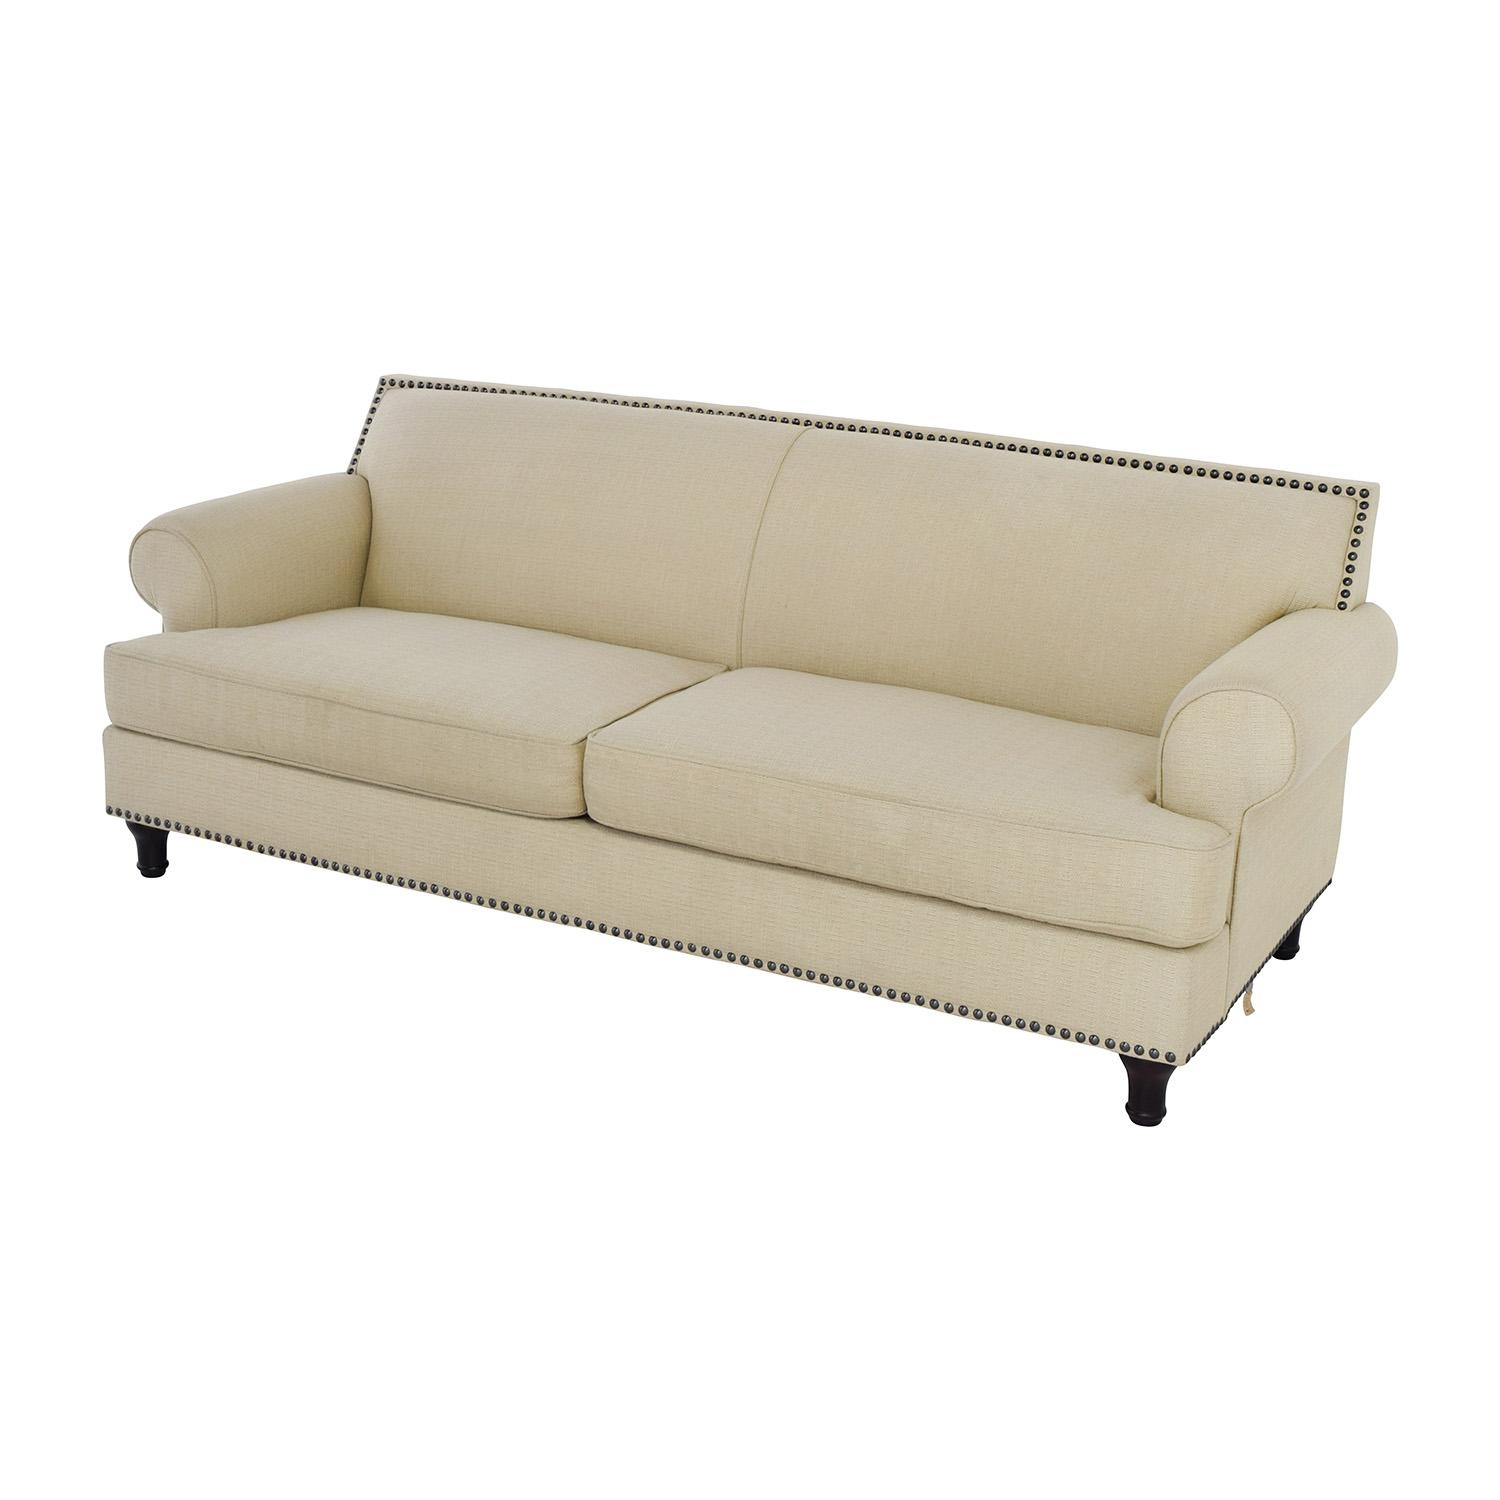 48% Off - Pier 1 Pier 1 Carmen Tan Couch With Studs / Sofas within Pier 1 Sofas